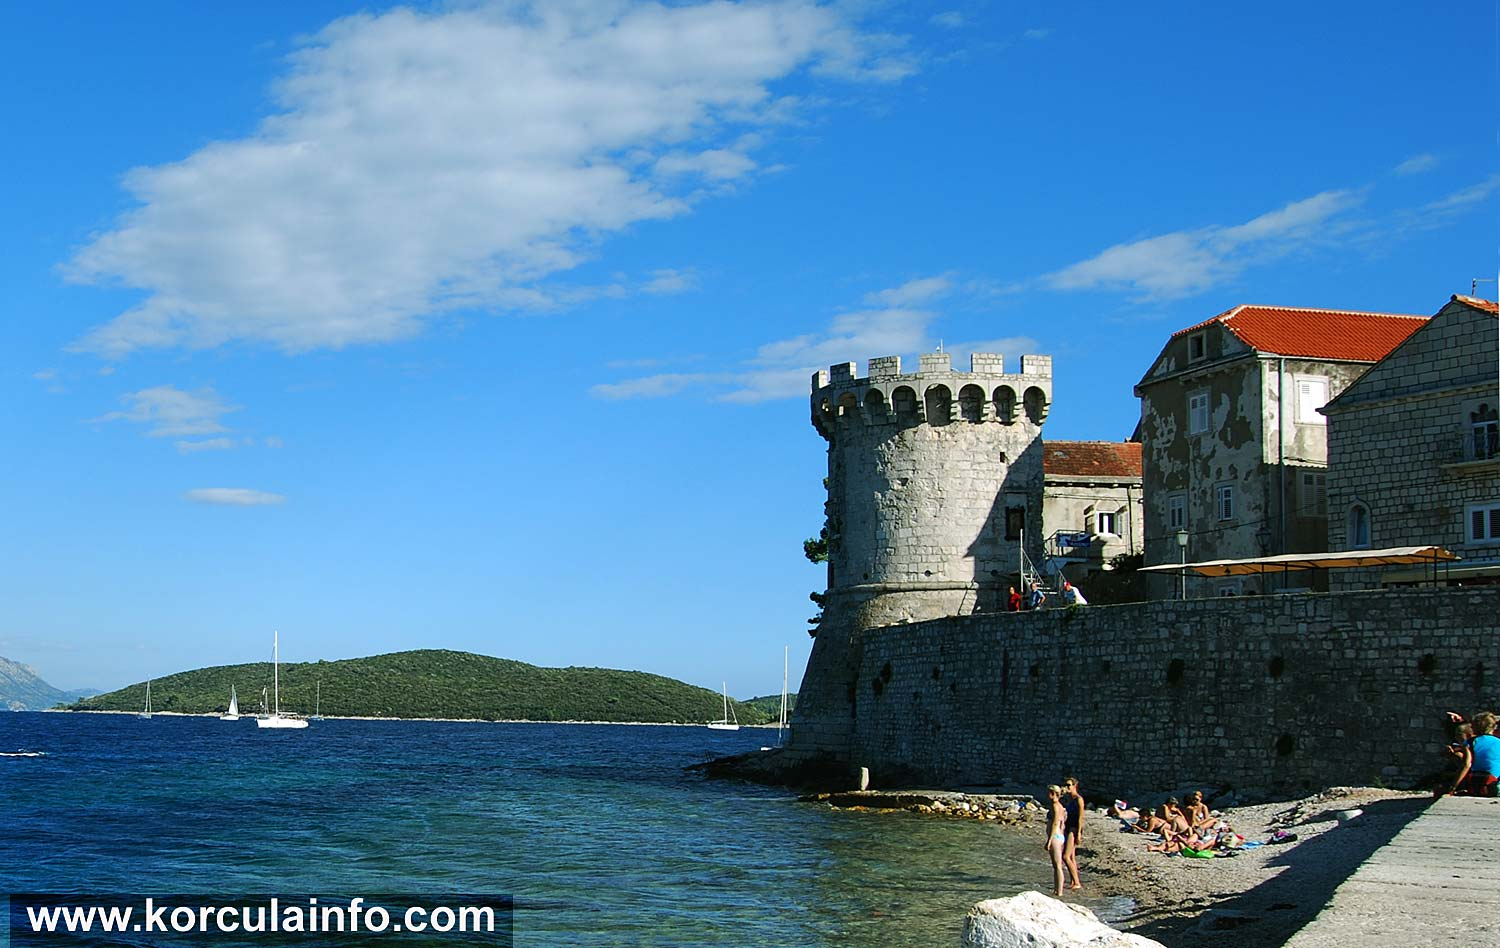 Afternoon at Puntin Beach in Korcula Old Town